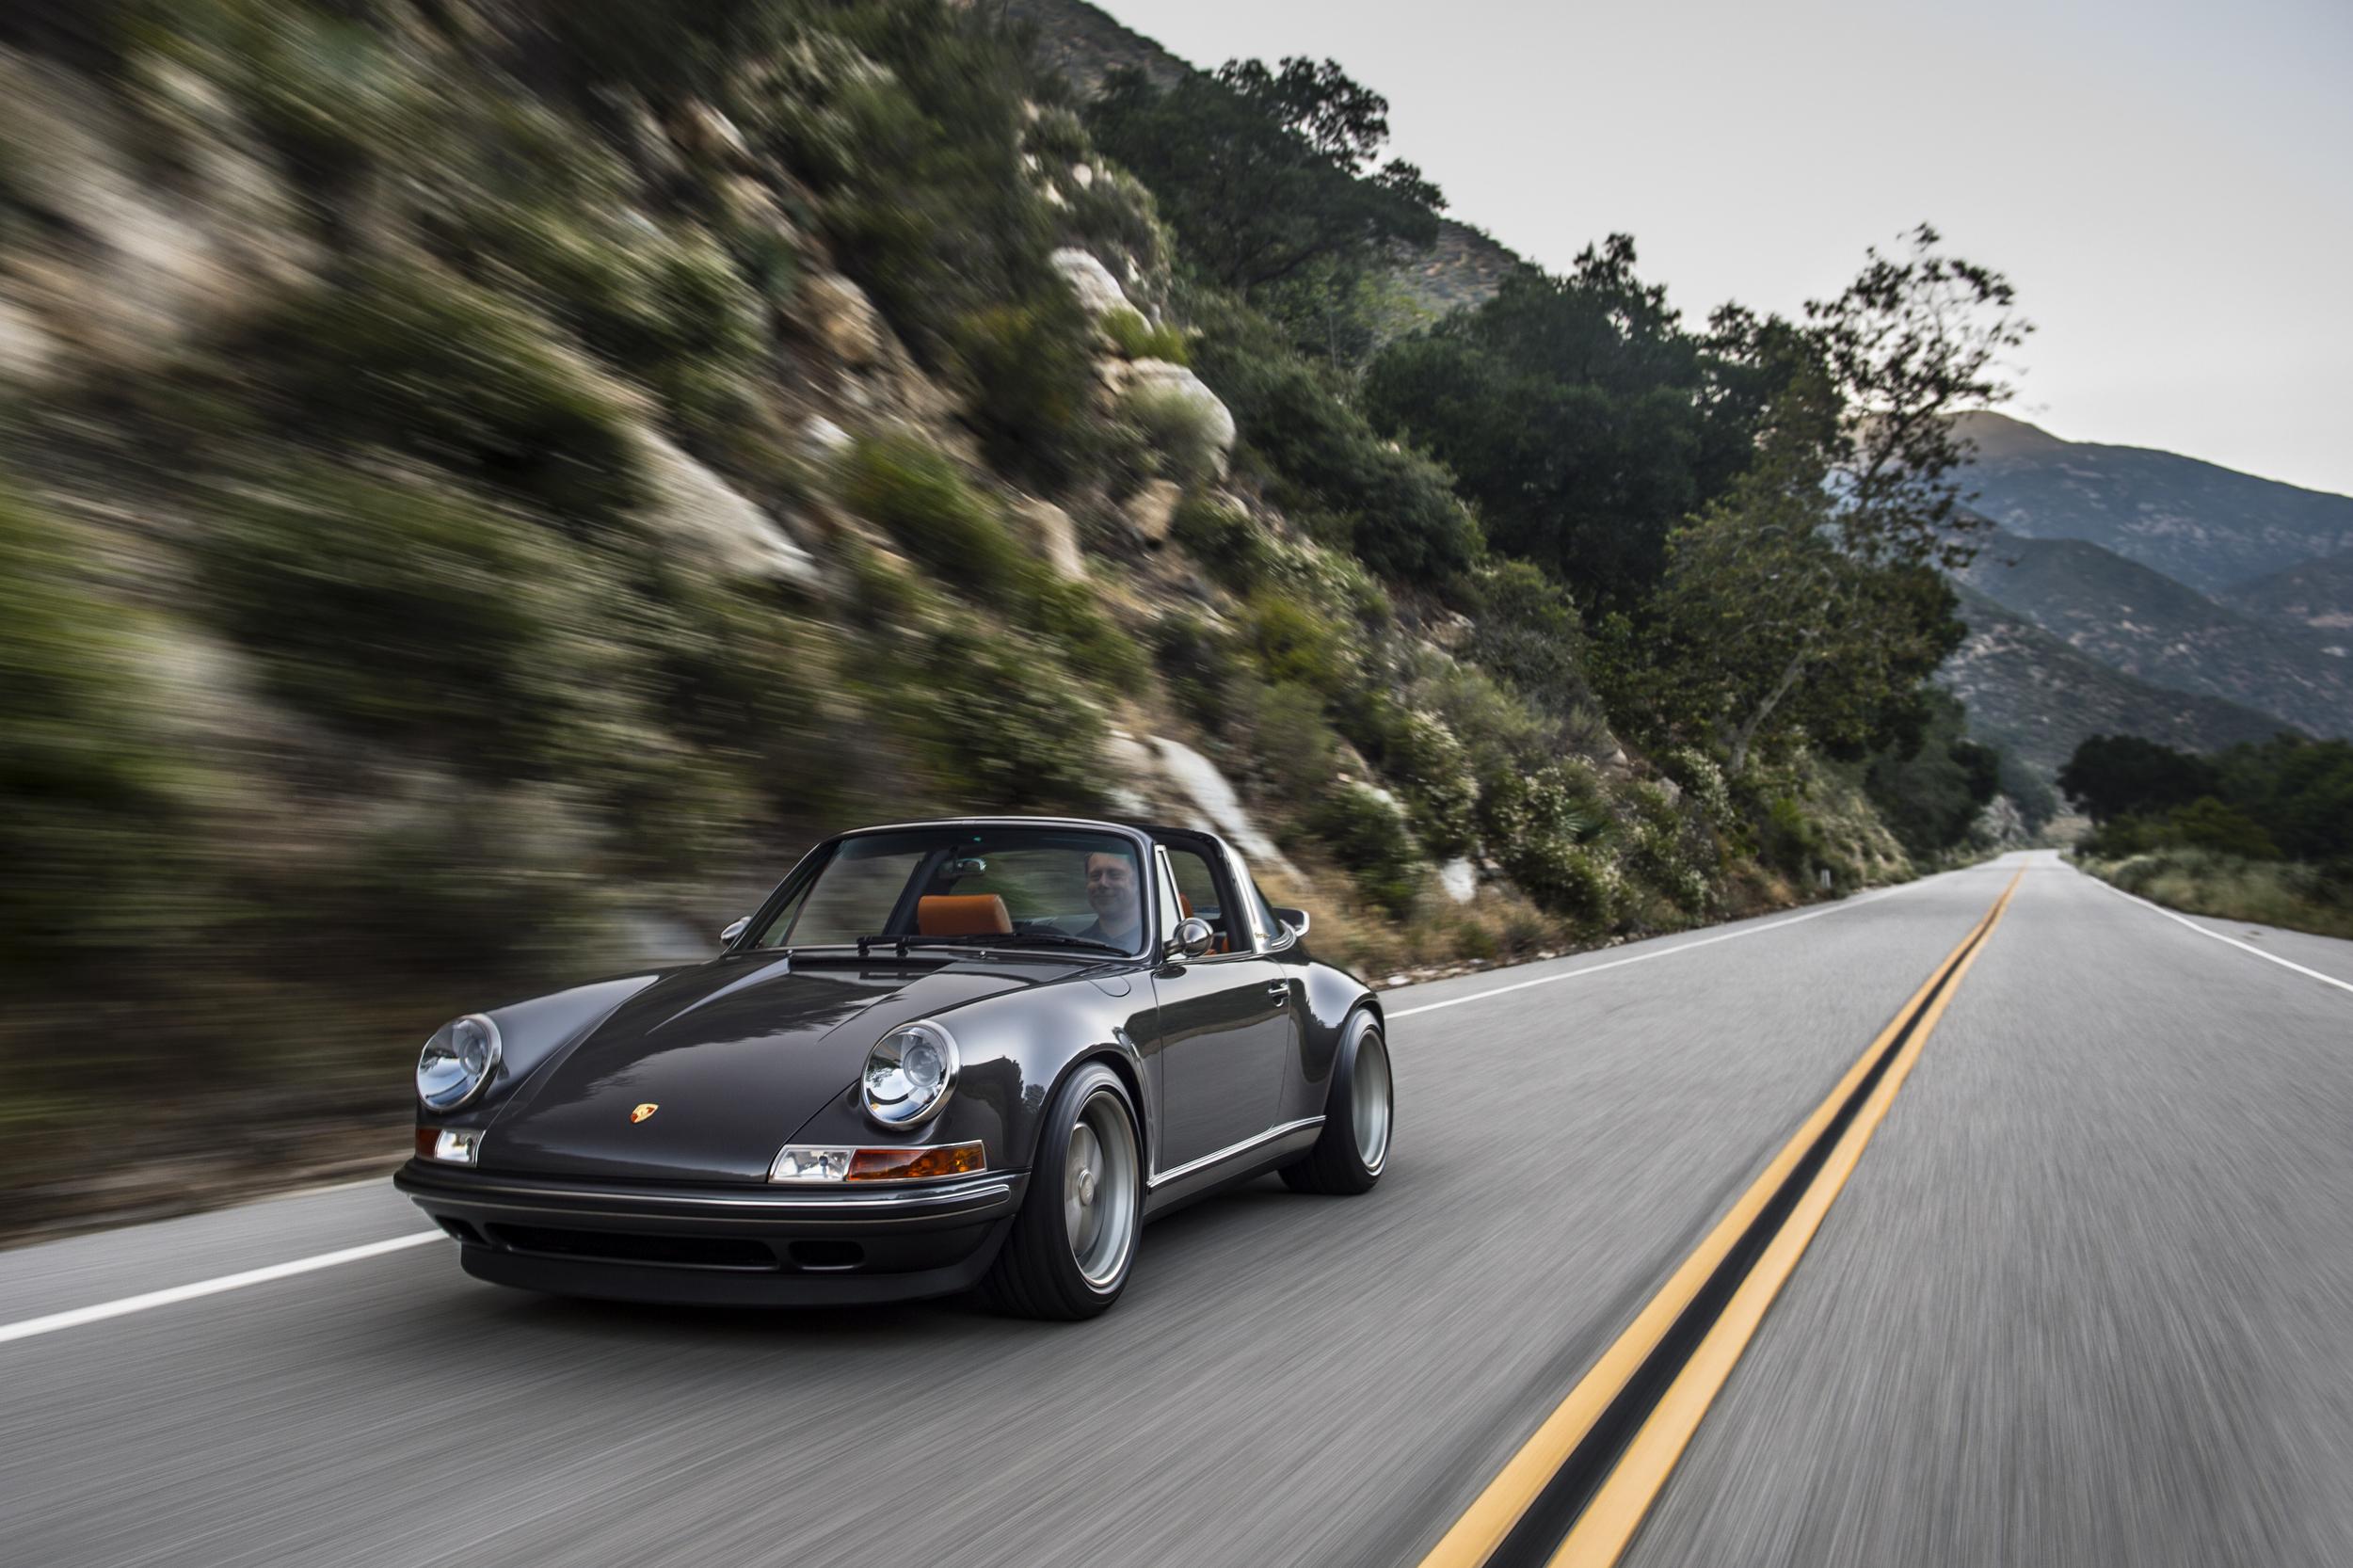 Porsche 911 Targa 4 0 reimagined by Singer Photo Gallery